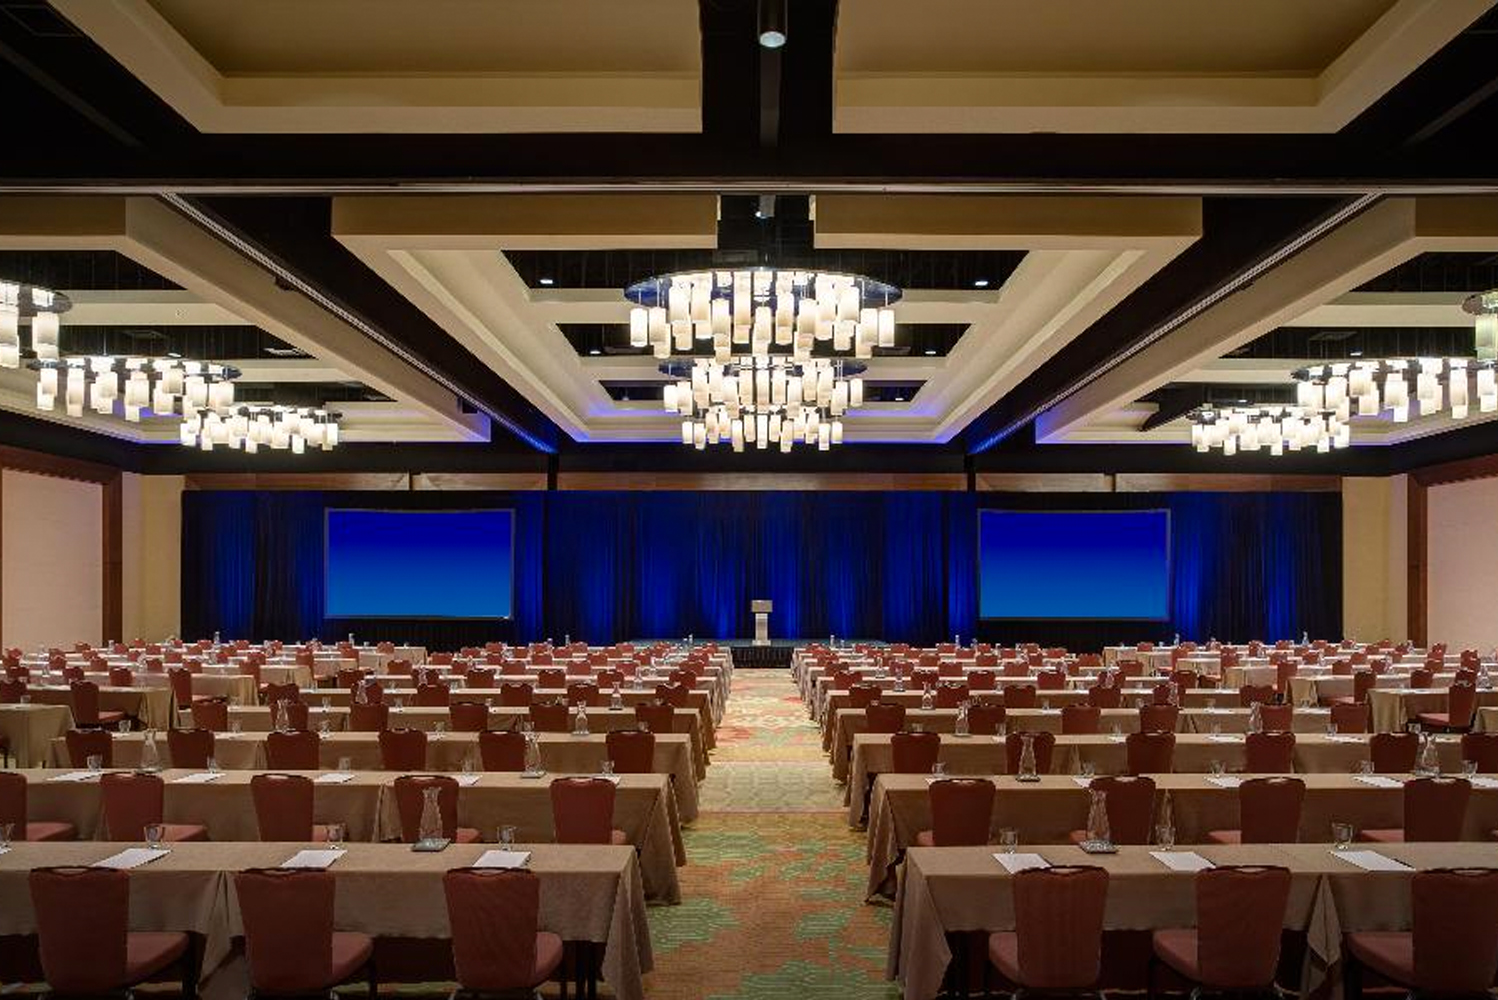 Grand Hyatt San Antonio has 115,000 square feet of indoor and outdoor space for events.